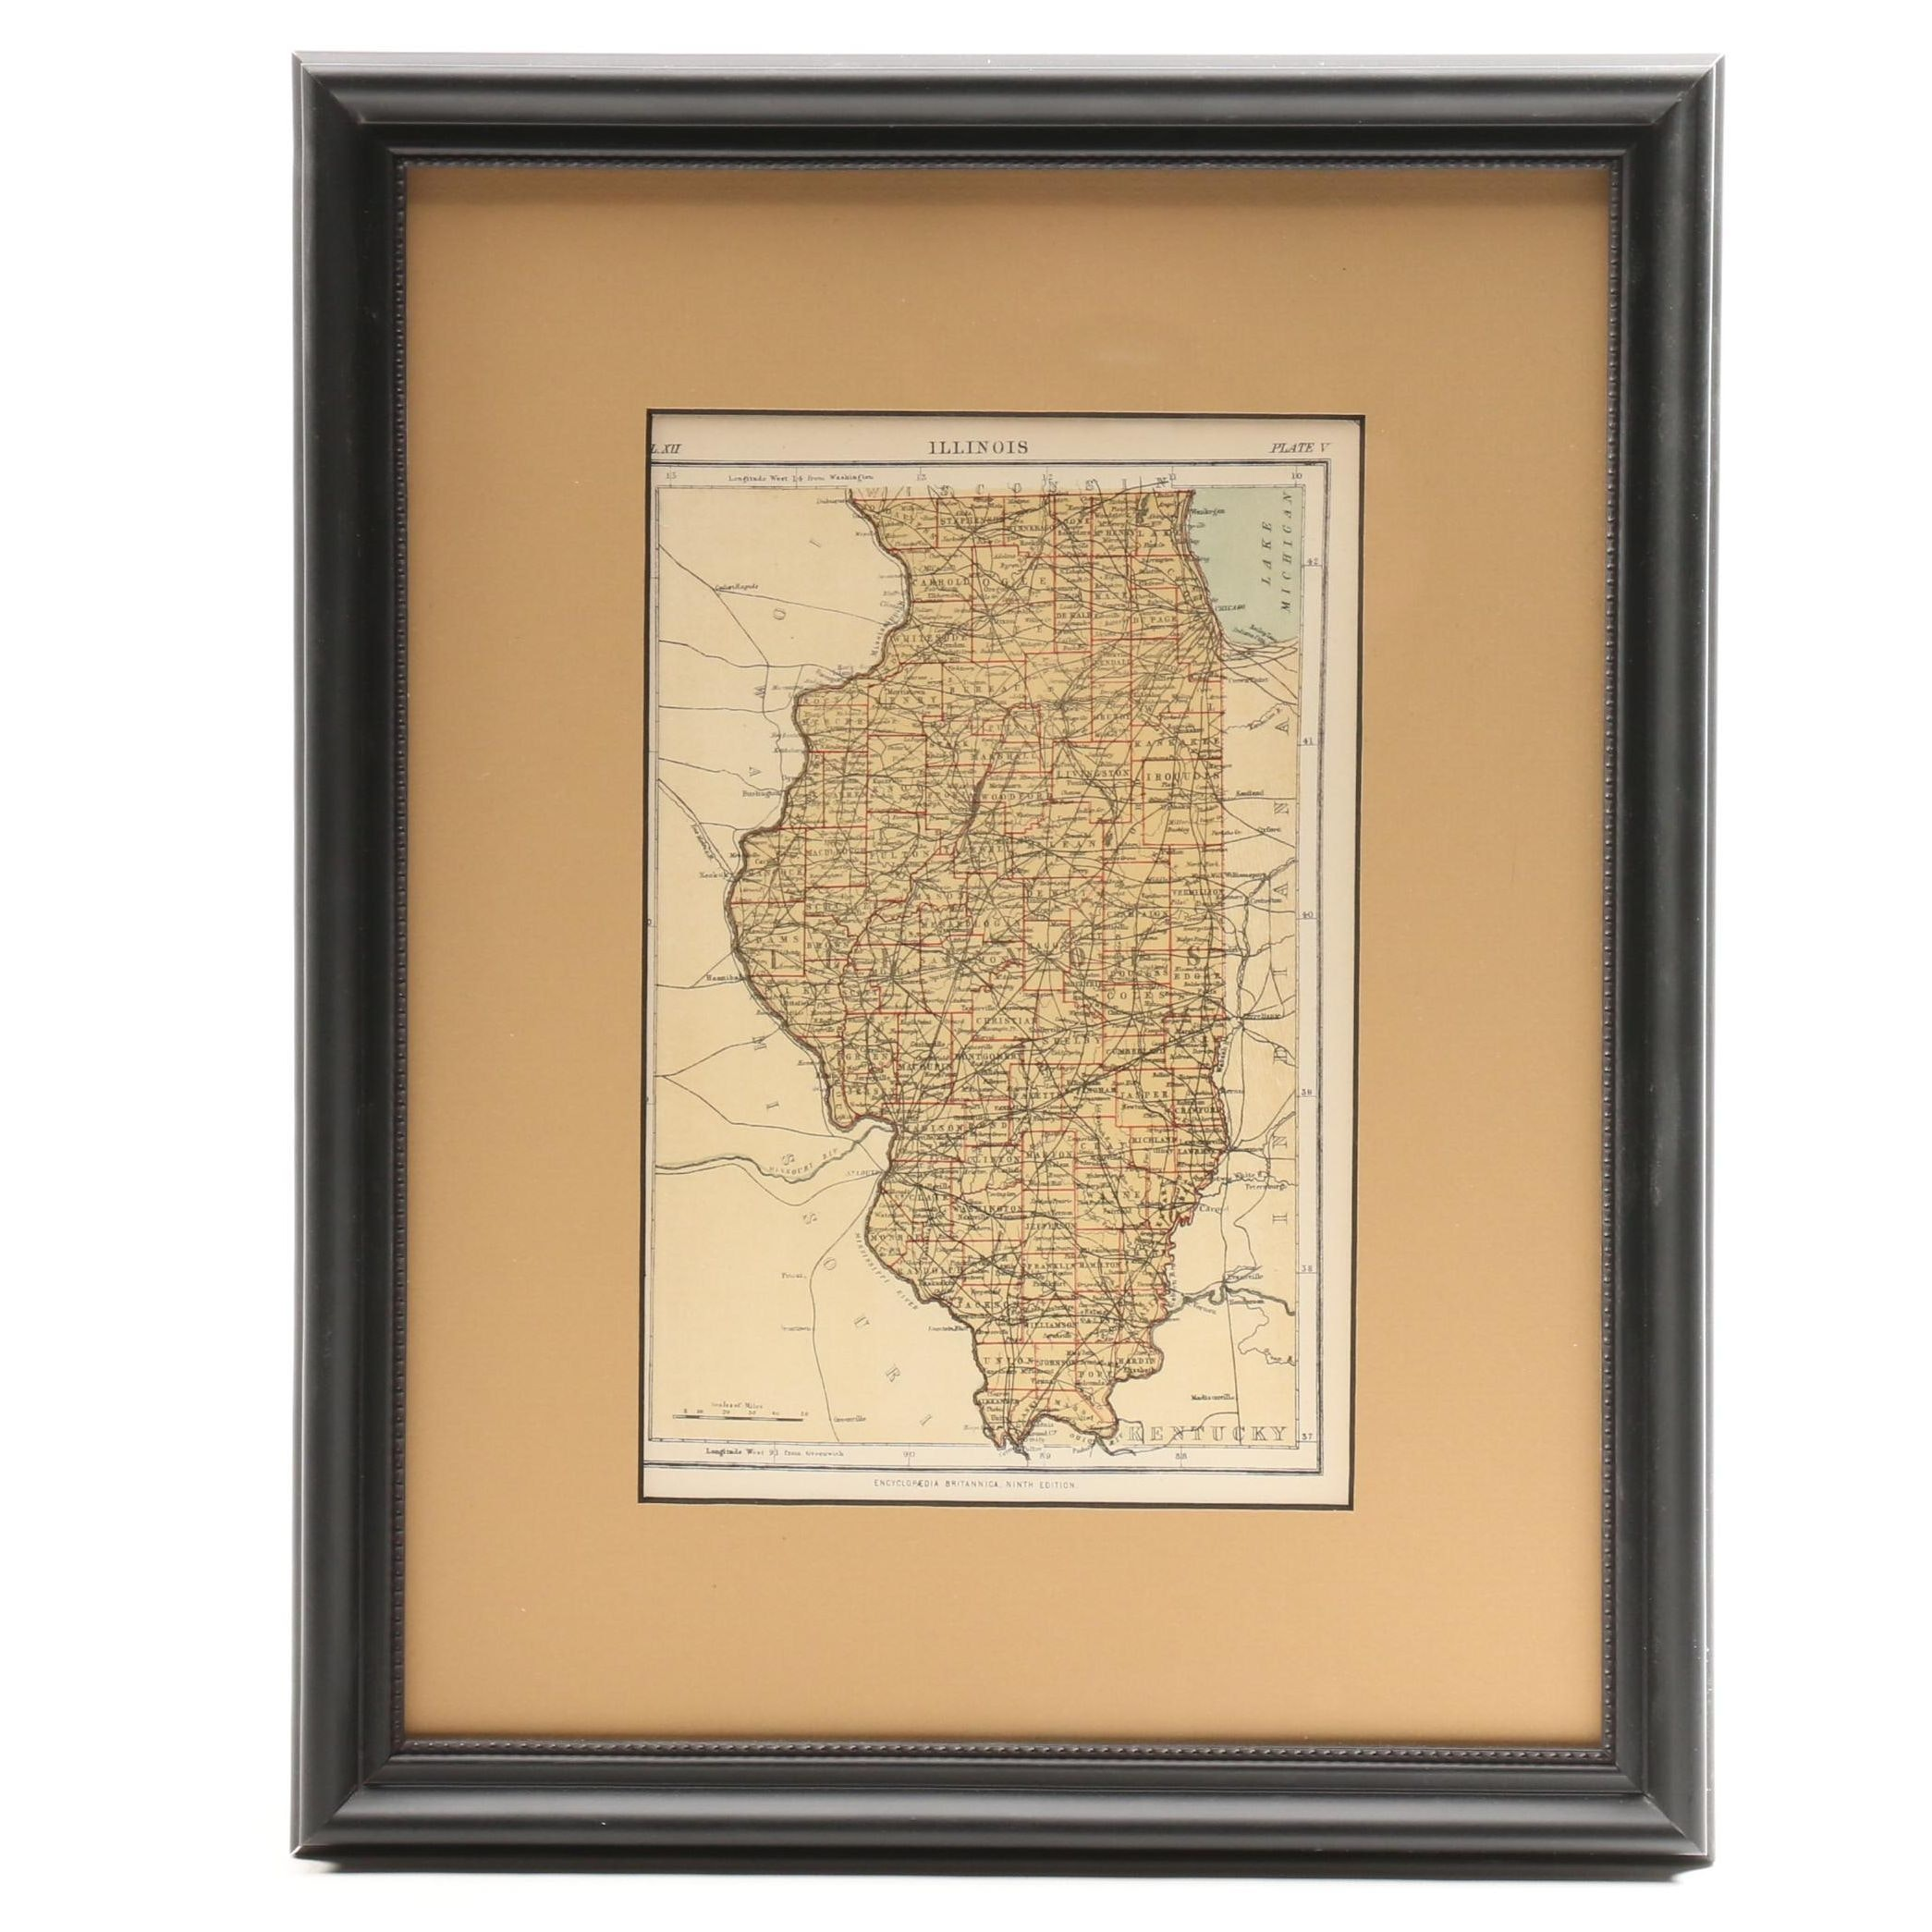 Antique Map of Illinois